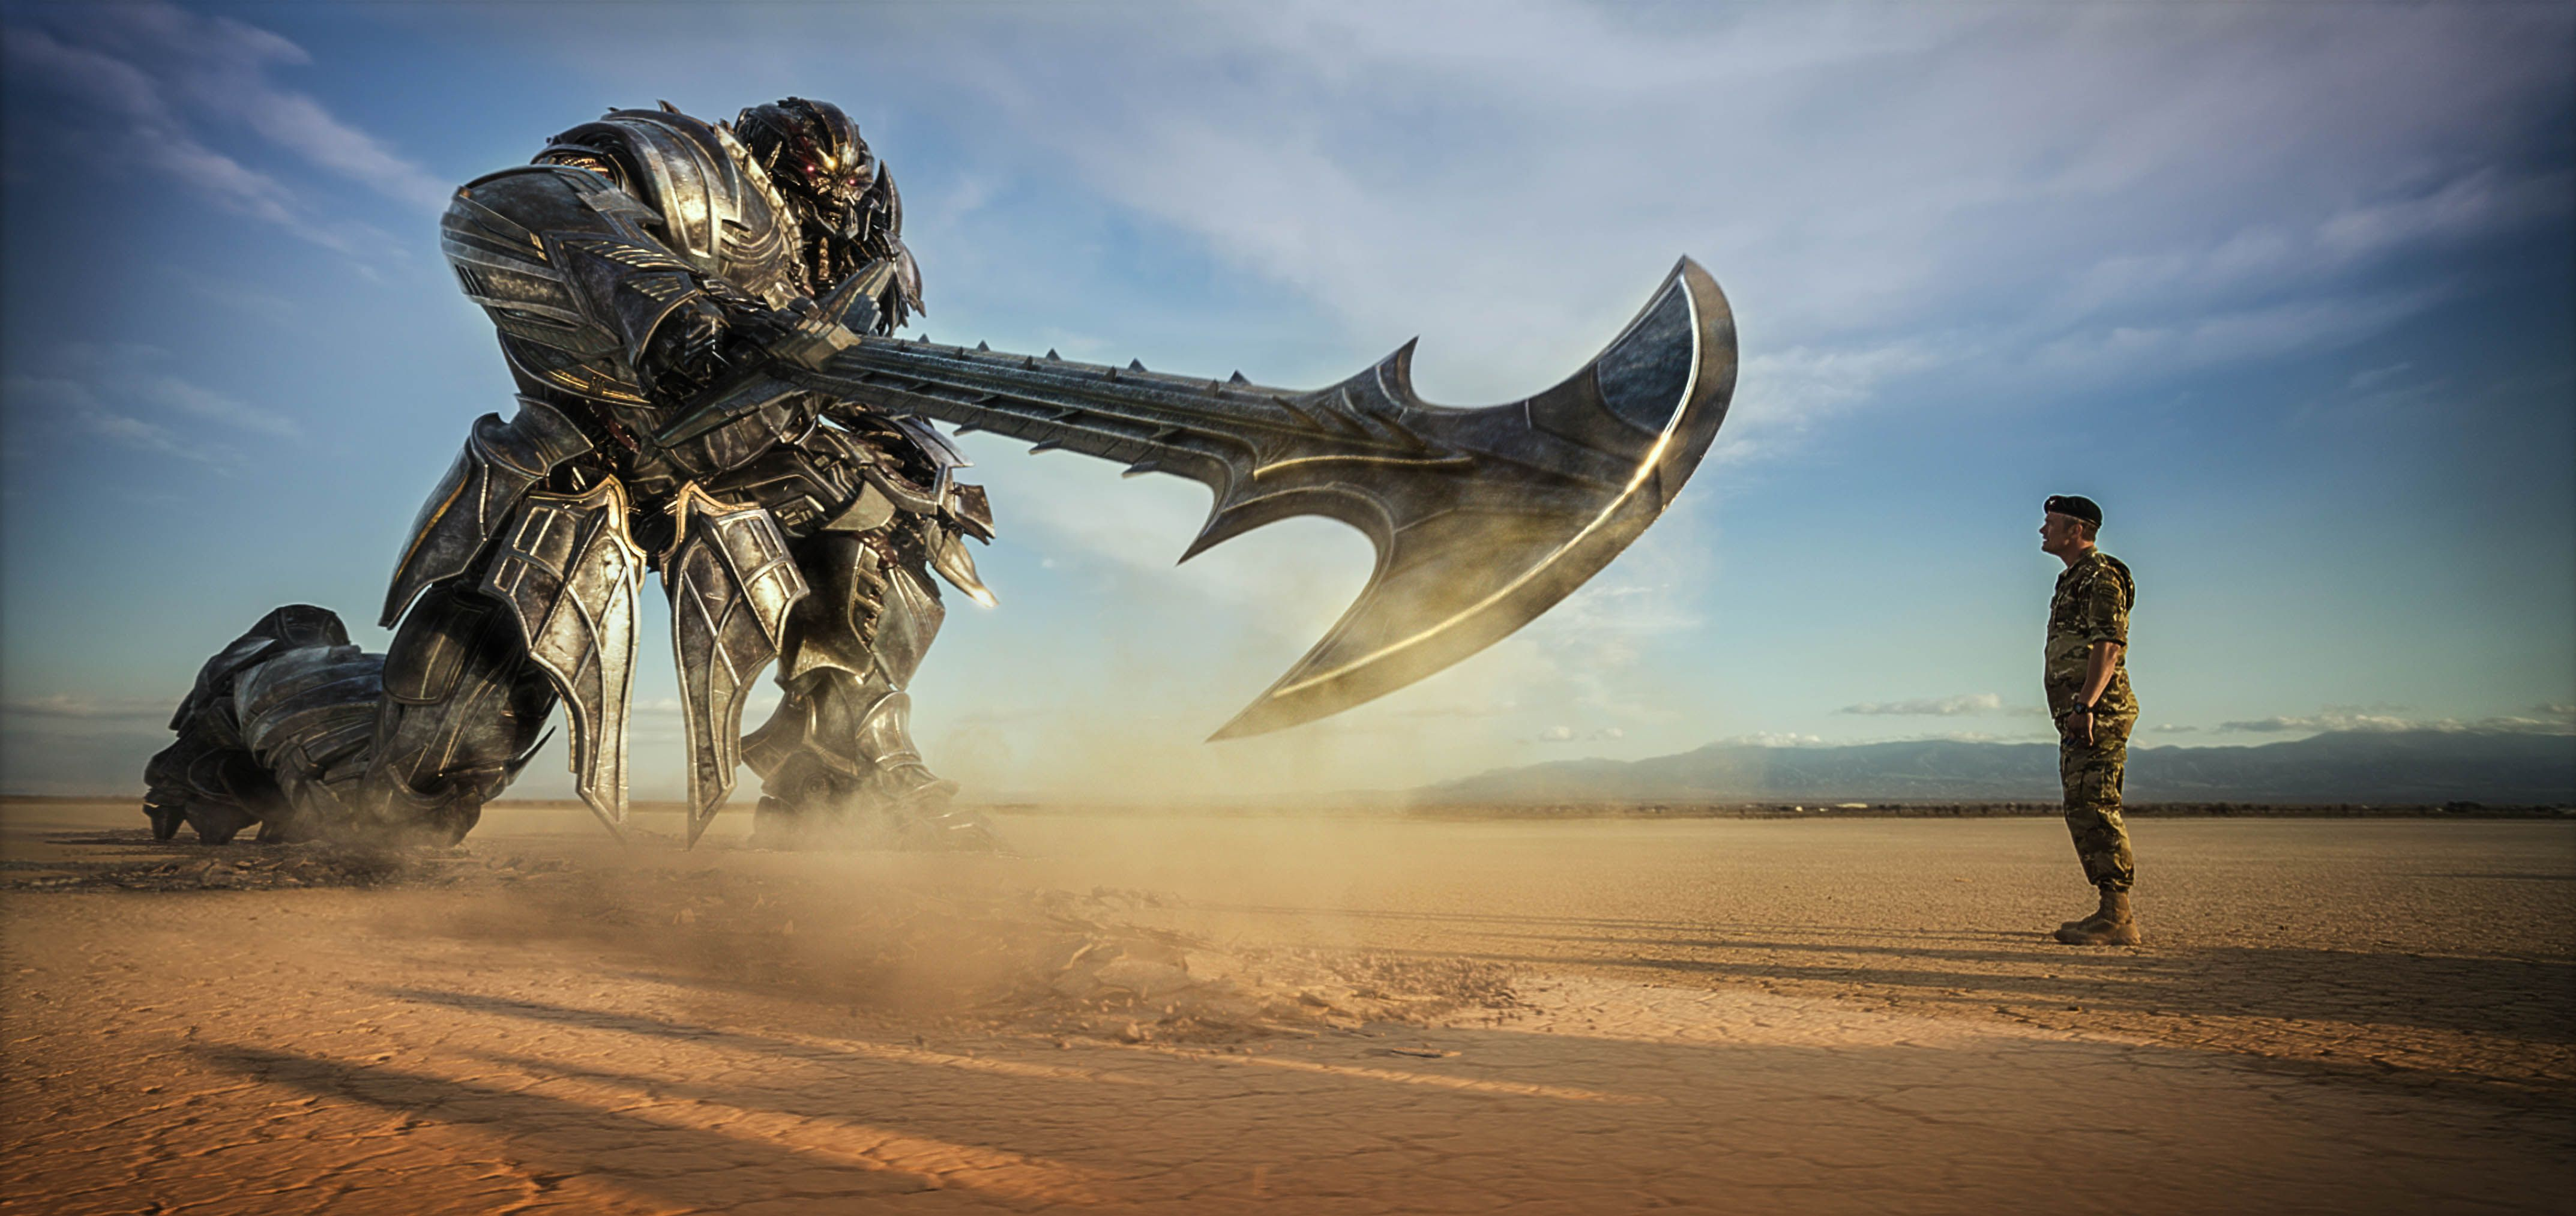 Transformers 5 Images Show Off More Robot Carnage | Collider